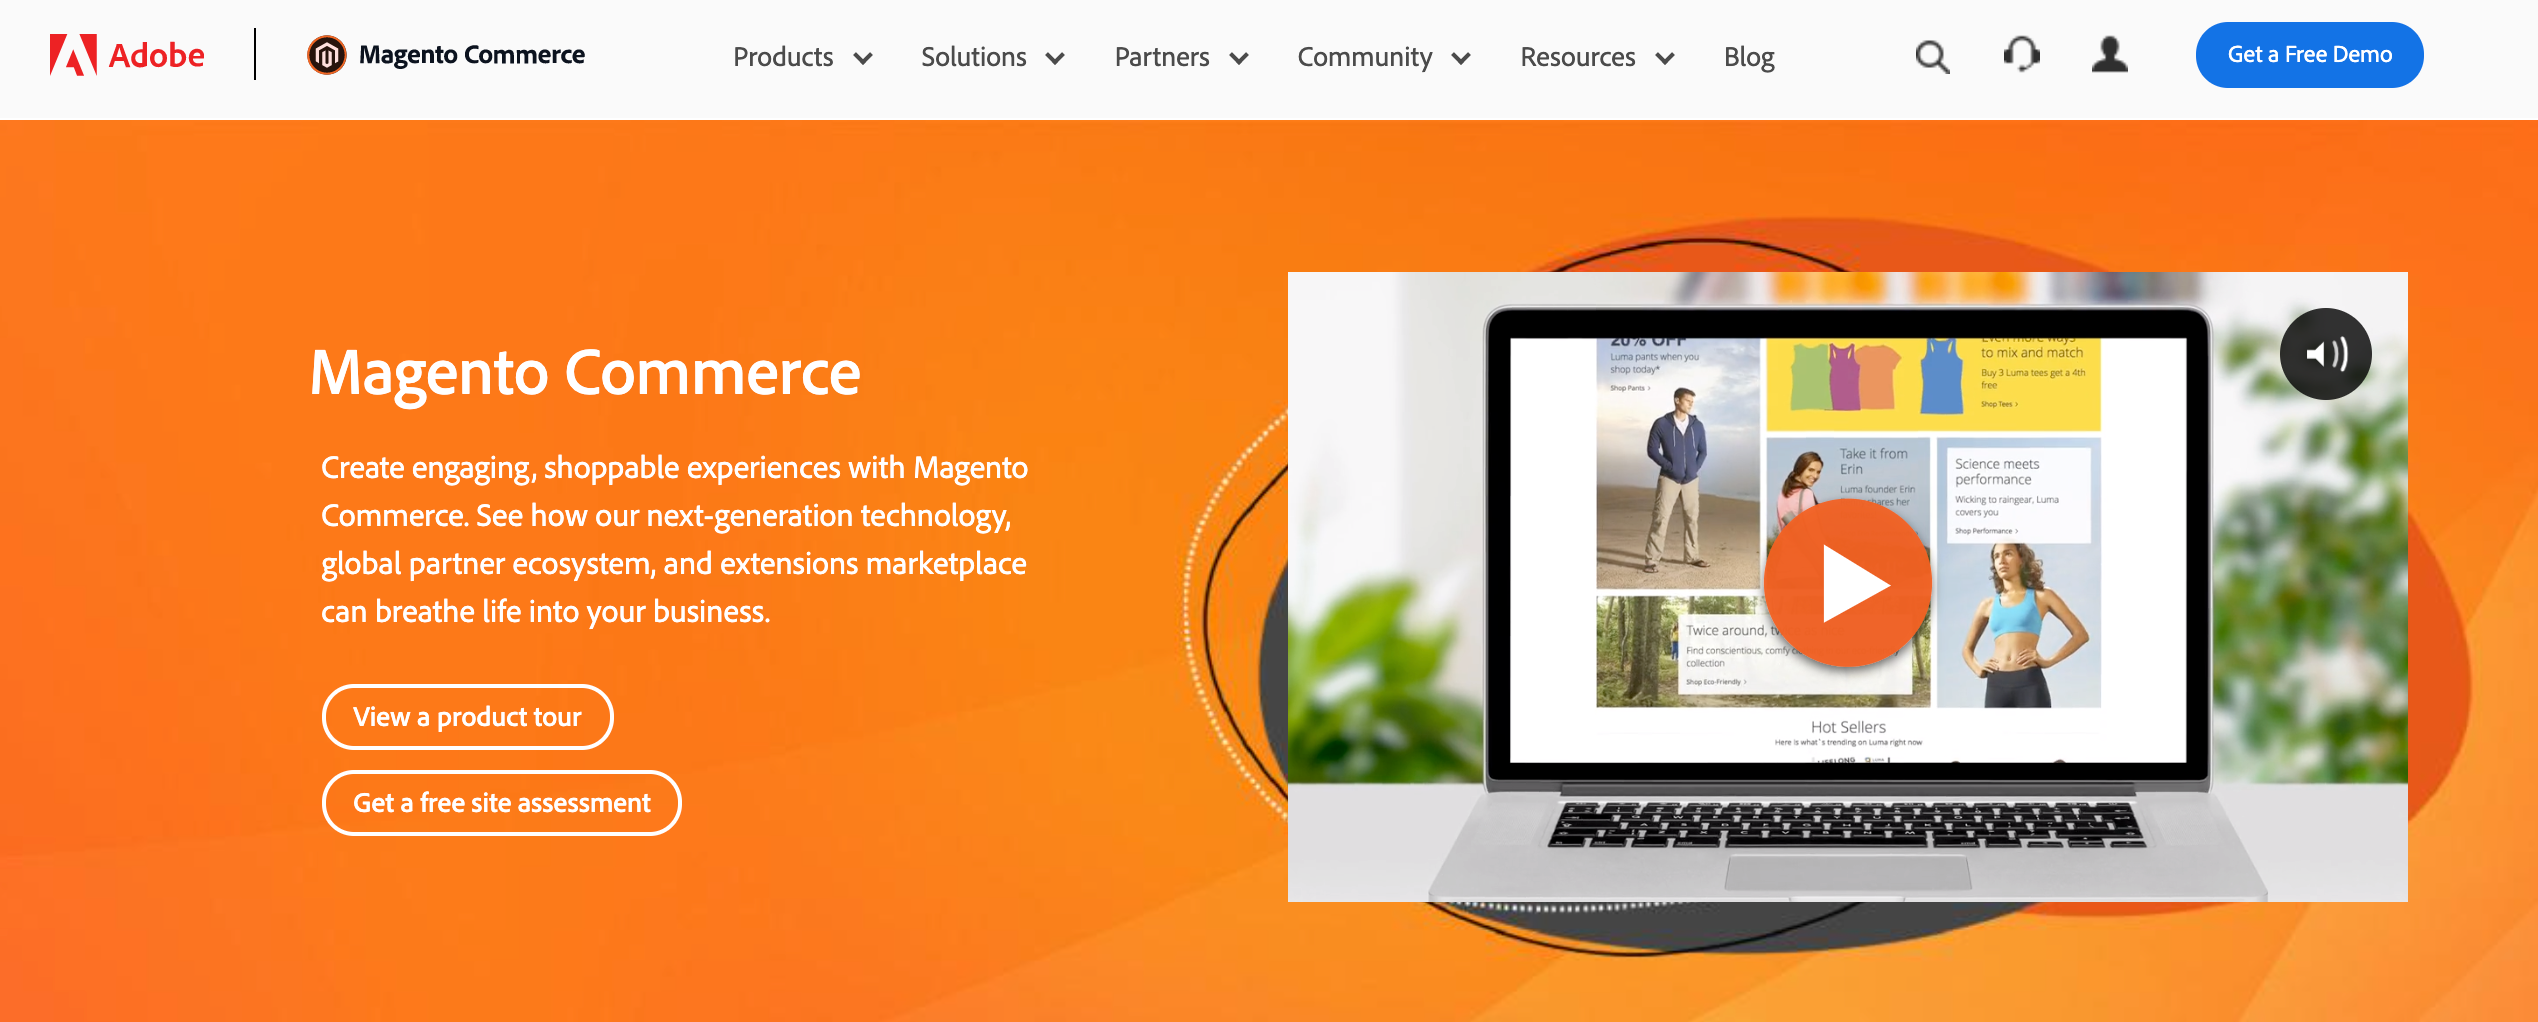 magento for smb ecommerce